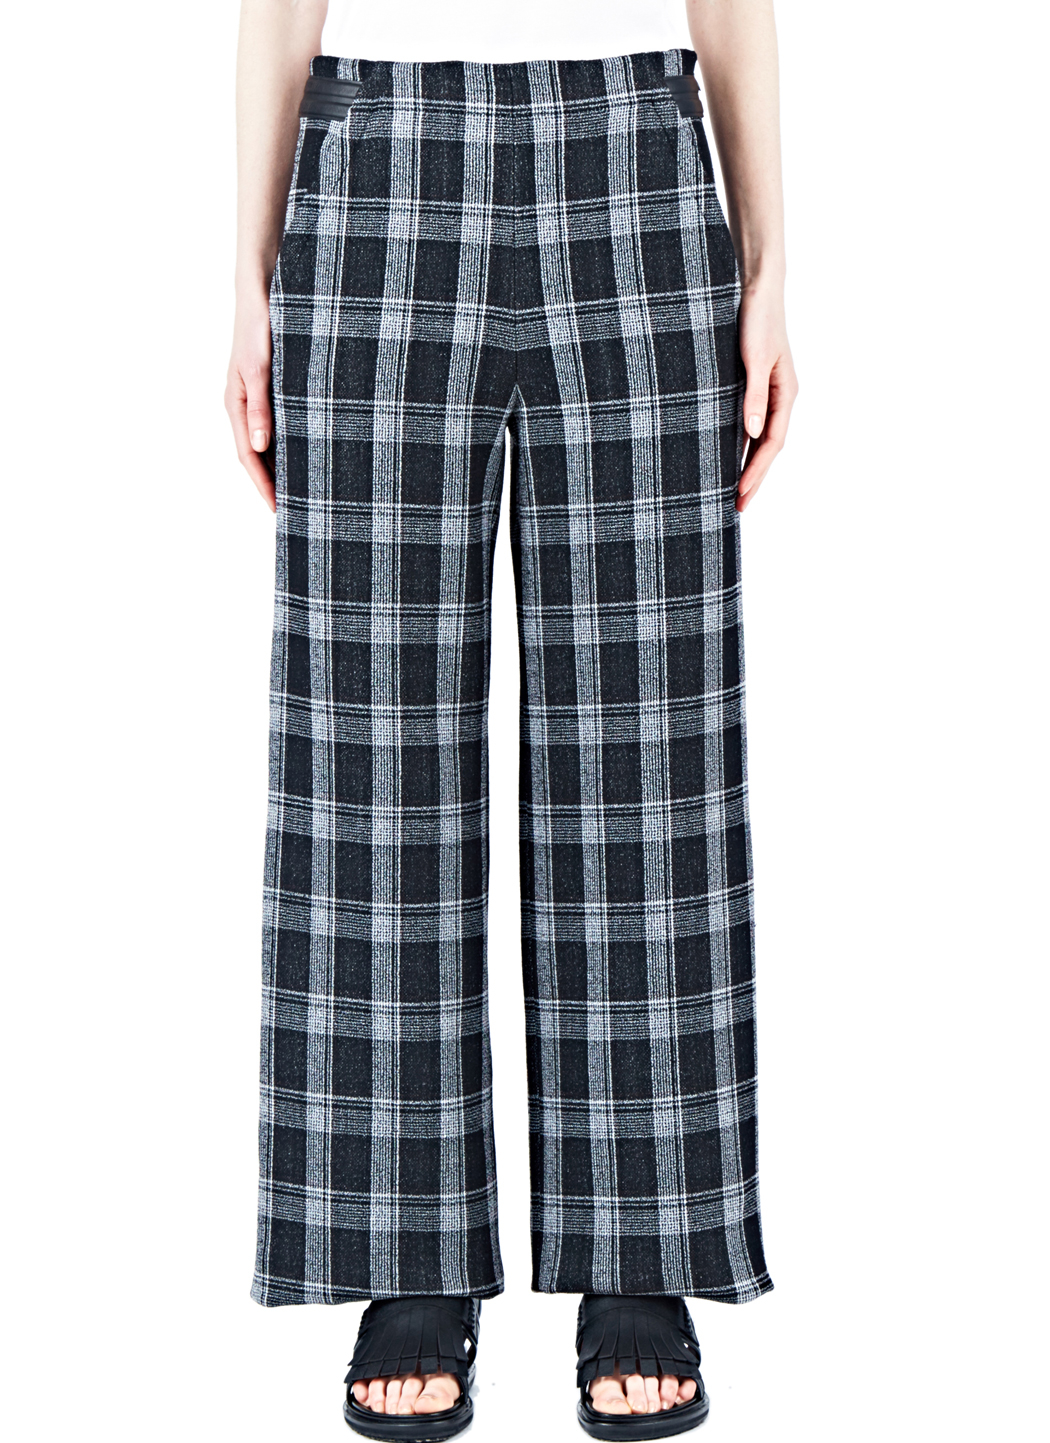 Have a fun adult play date in these plaid pants. They feature a high waist with a side zipper closure, dramatic wide pant legs, and a blue and white plaid pattern. Woven fabric offers no stretch. Model is 5'7